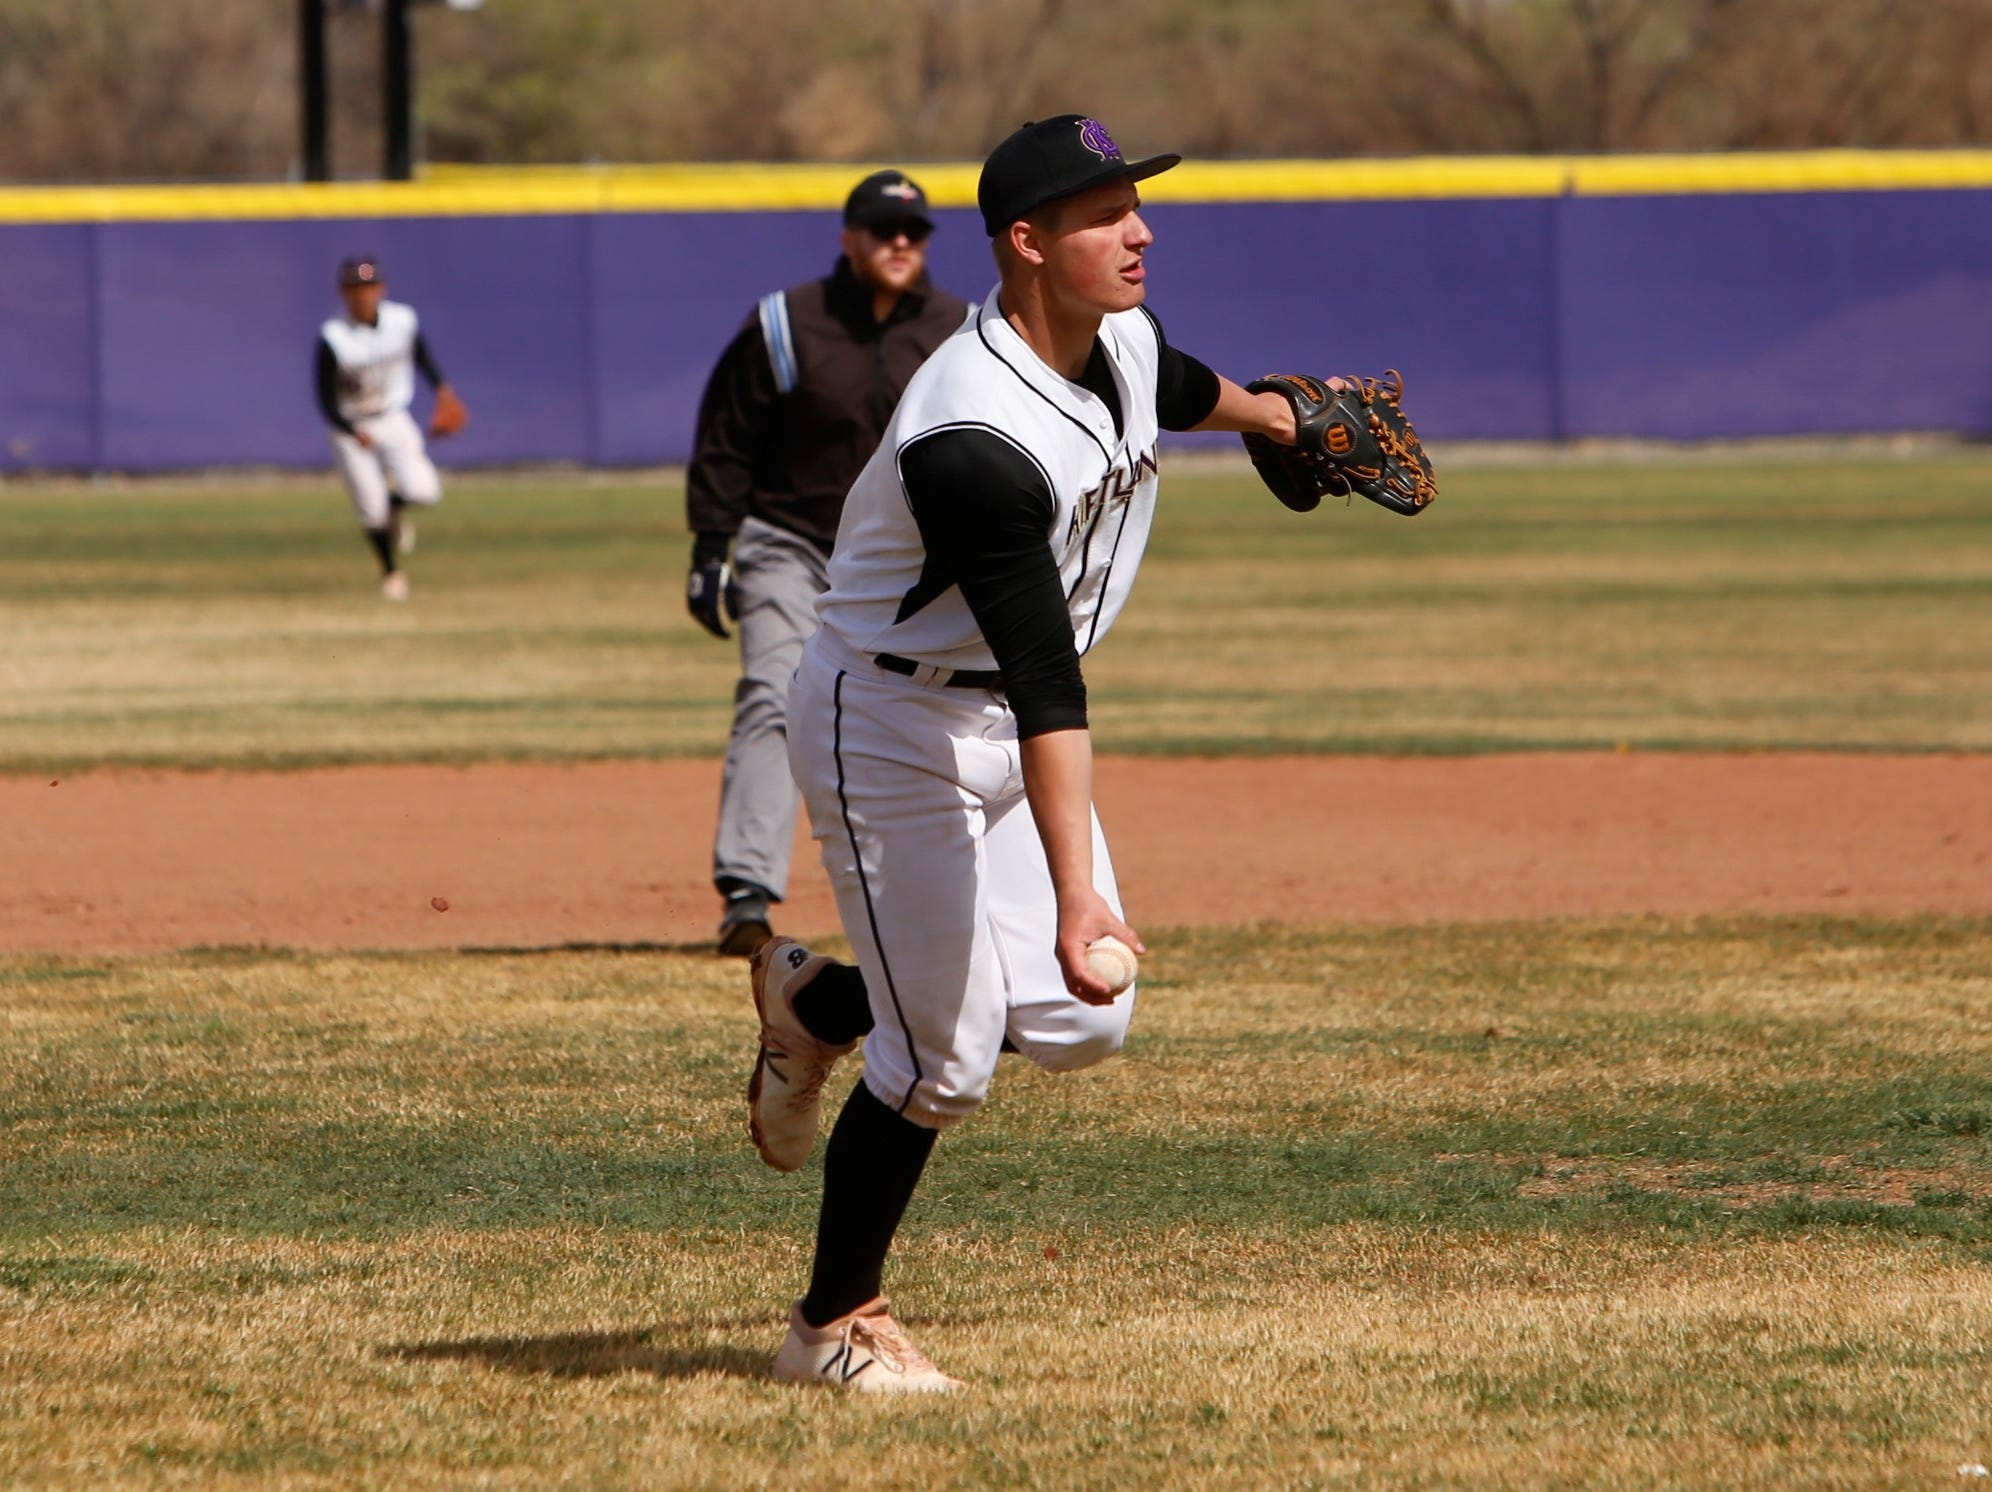 Kirtland Central's Cadan Flack tosses the ball to first base for an easy out against Shiprock during Thursday's District 1-4A game at KCHS.